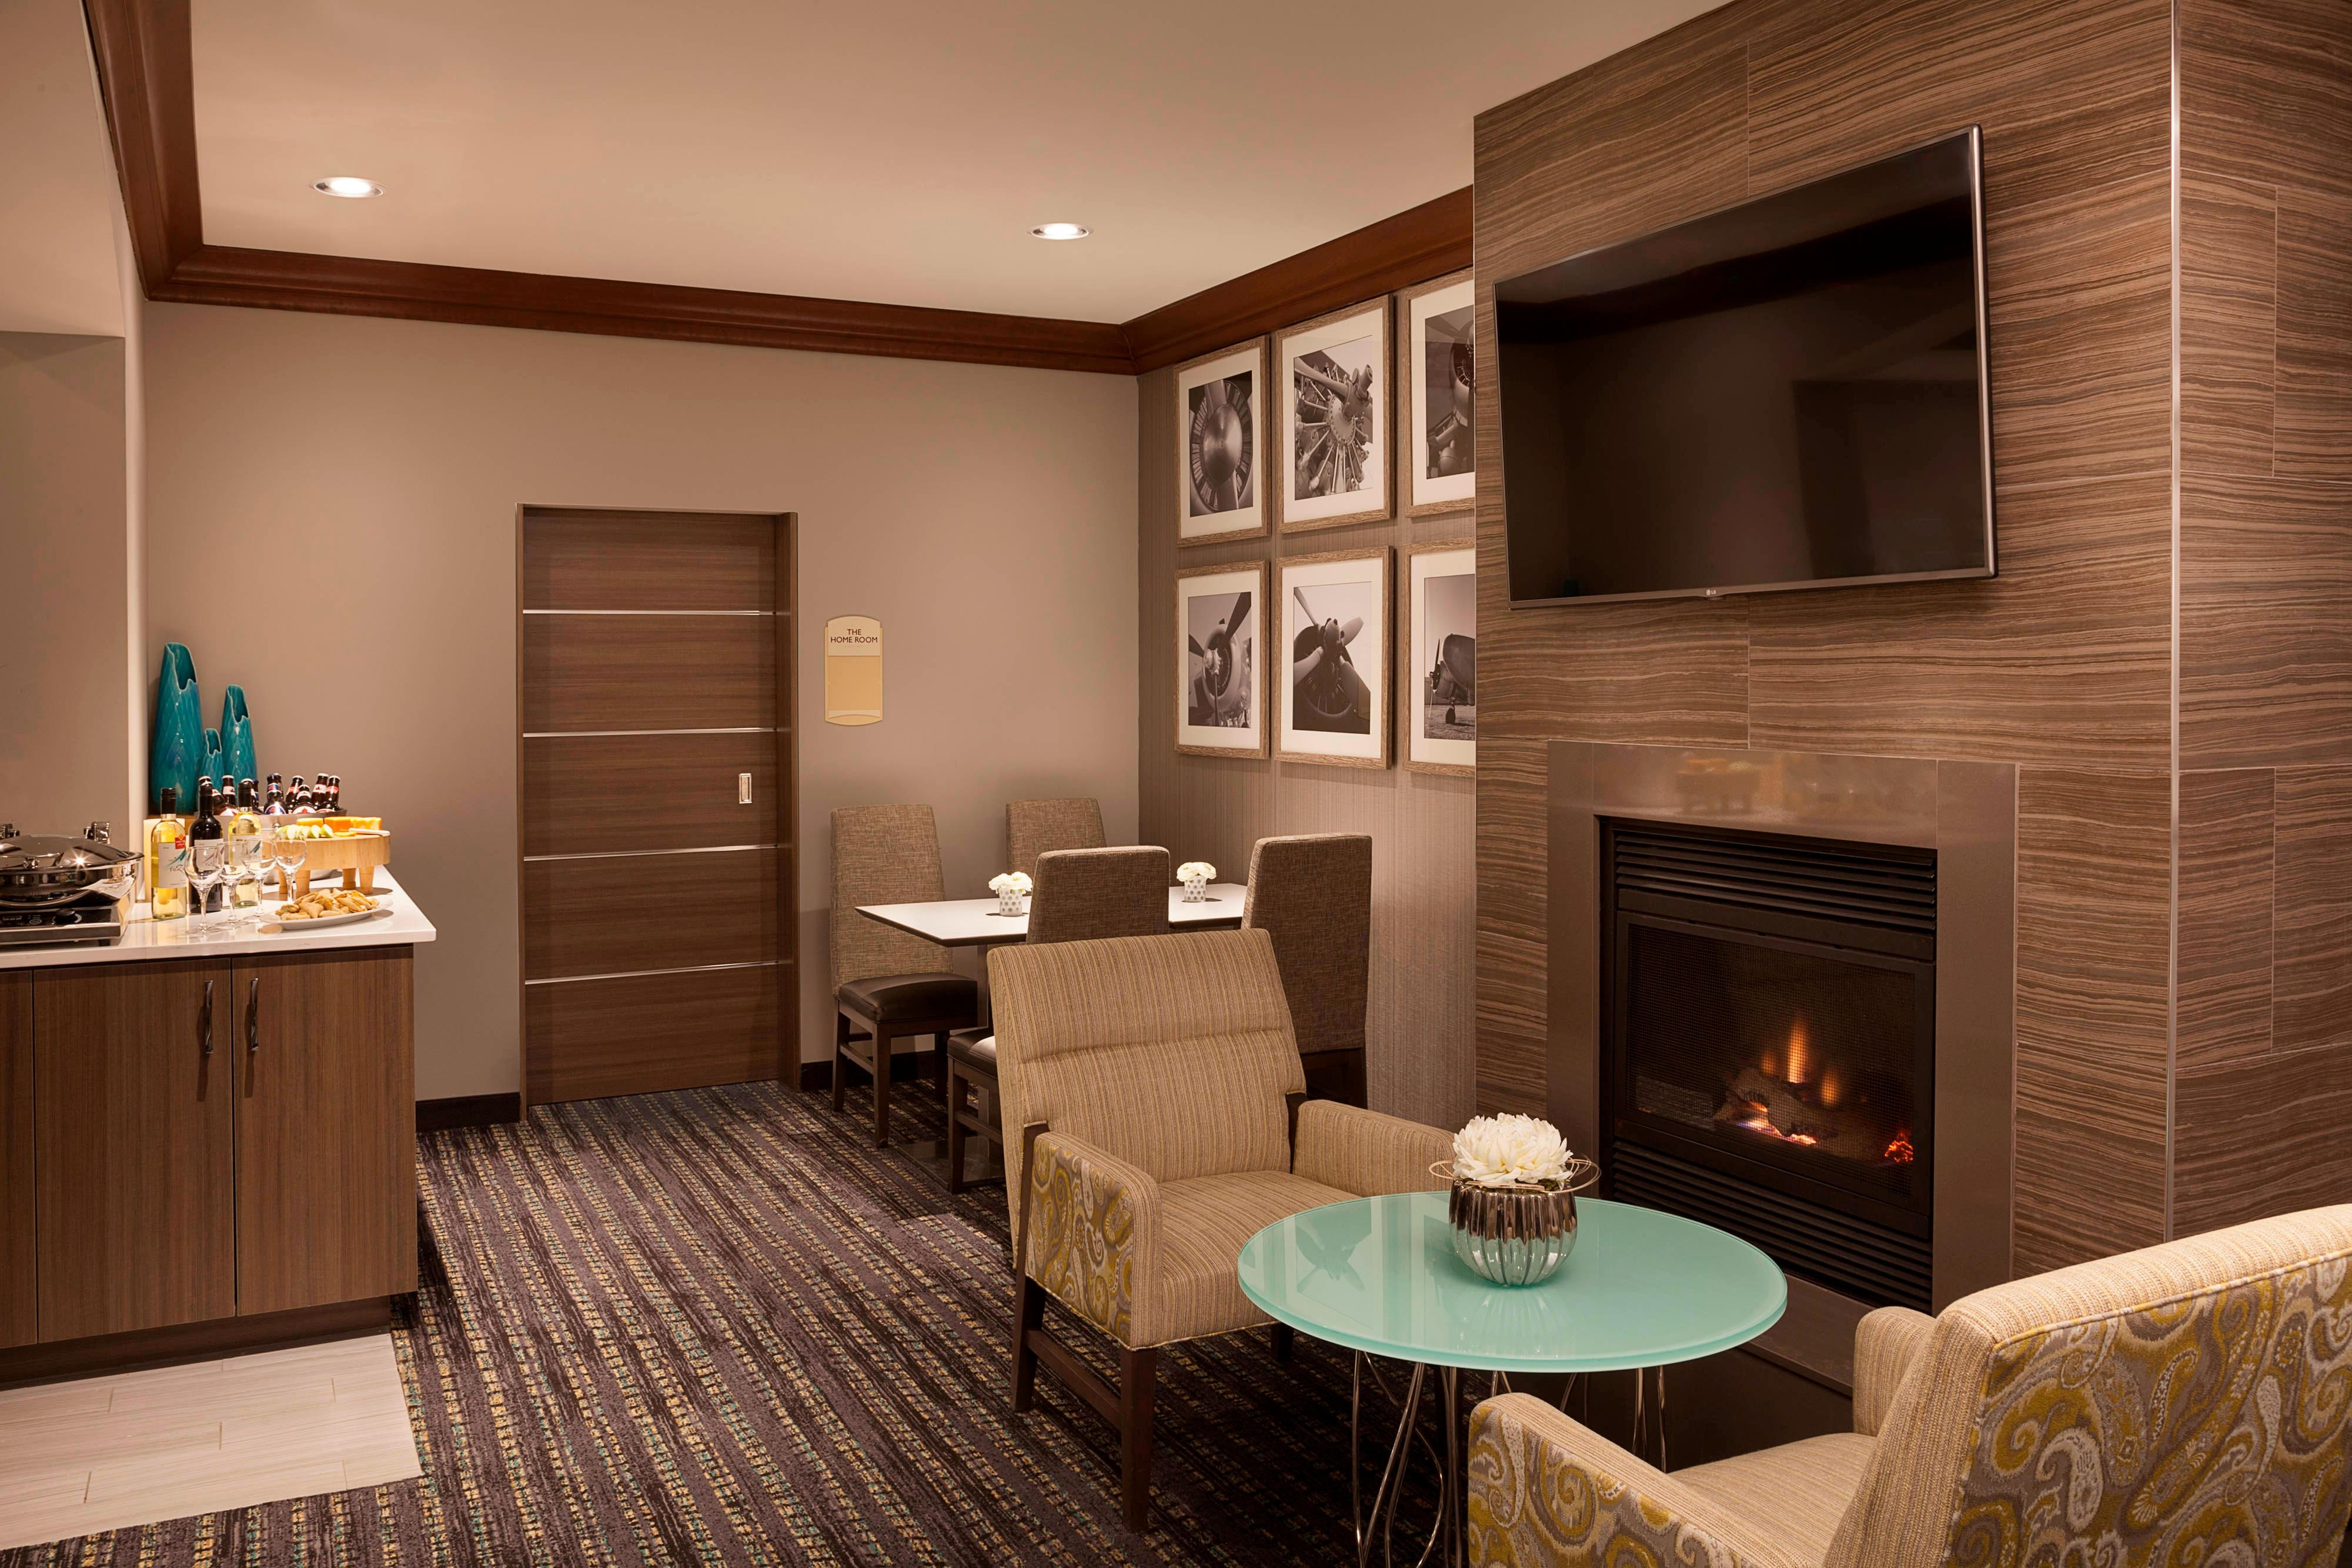 Residence Inn Toronto Airport Hearth Room Fireplace